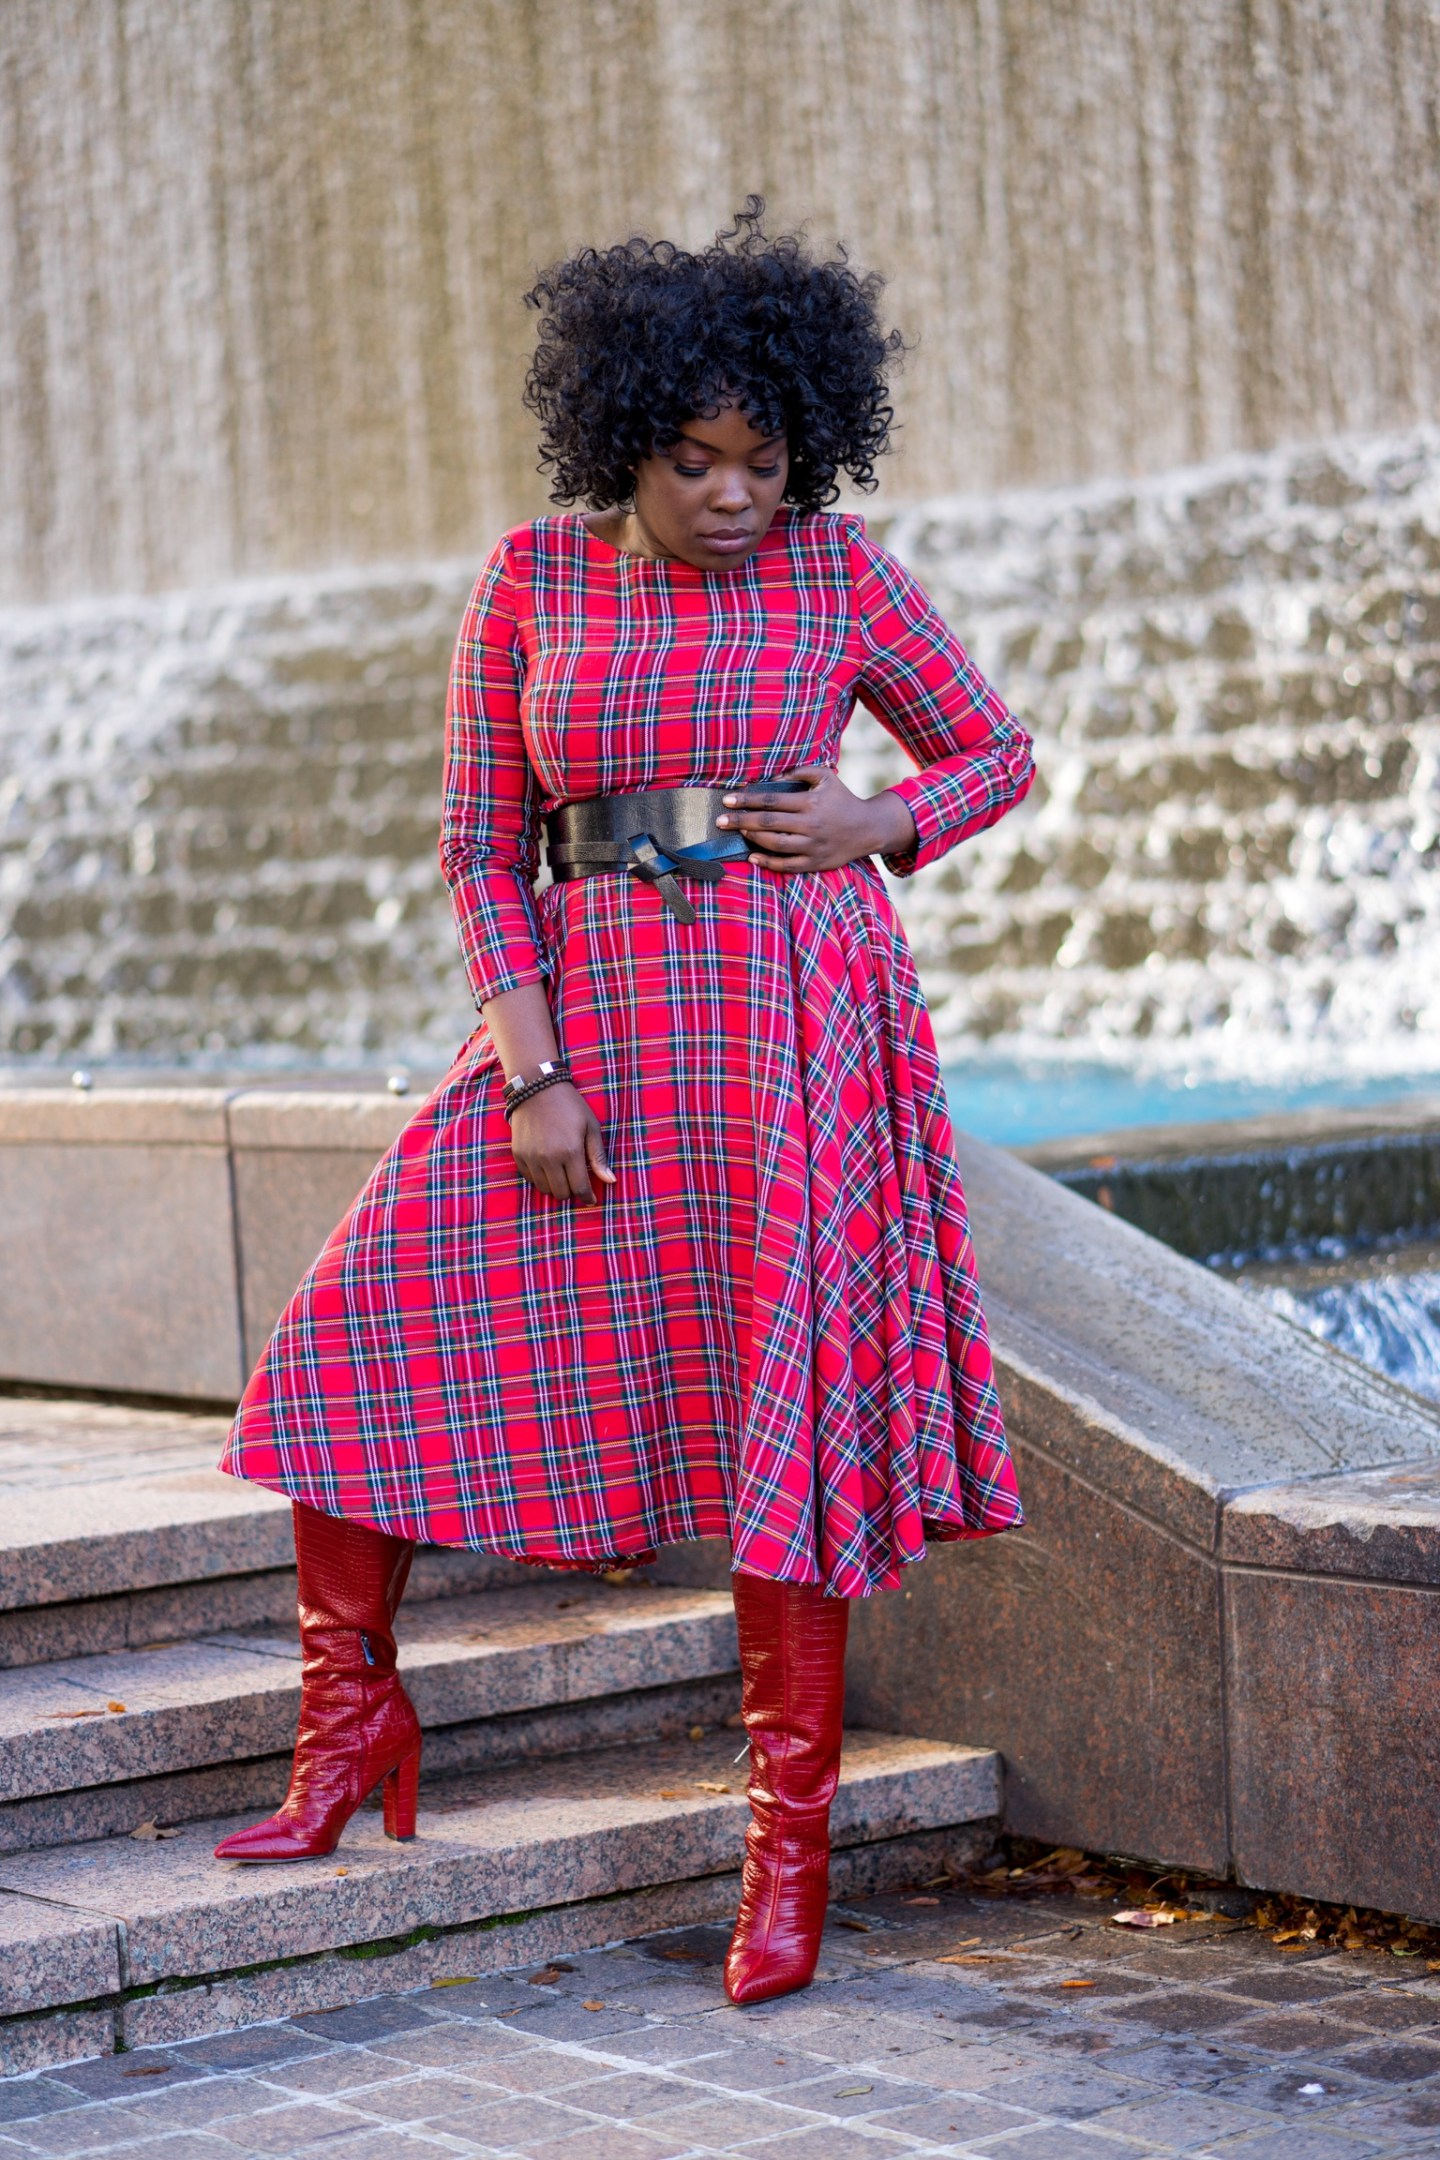 Wearing a red plaid dress from thrift store in Woodruff Park